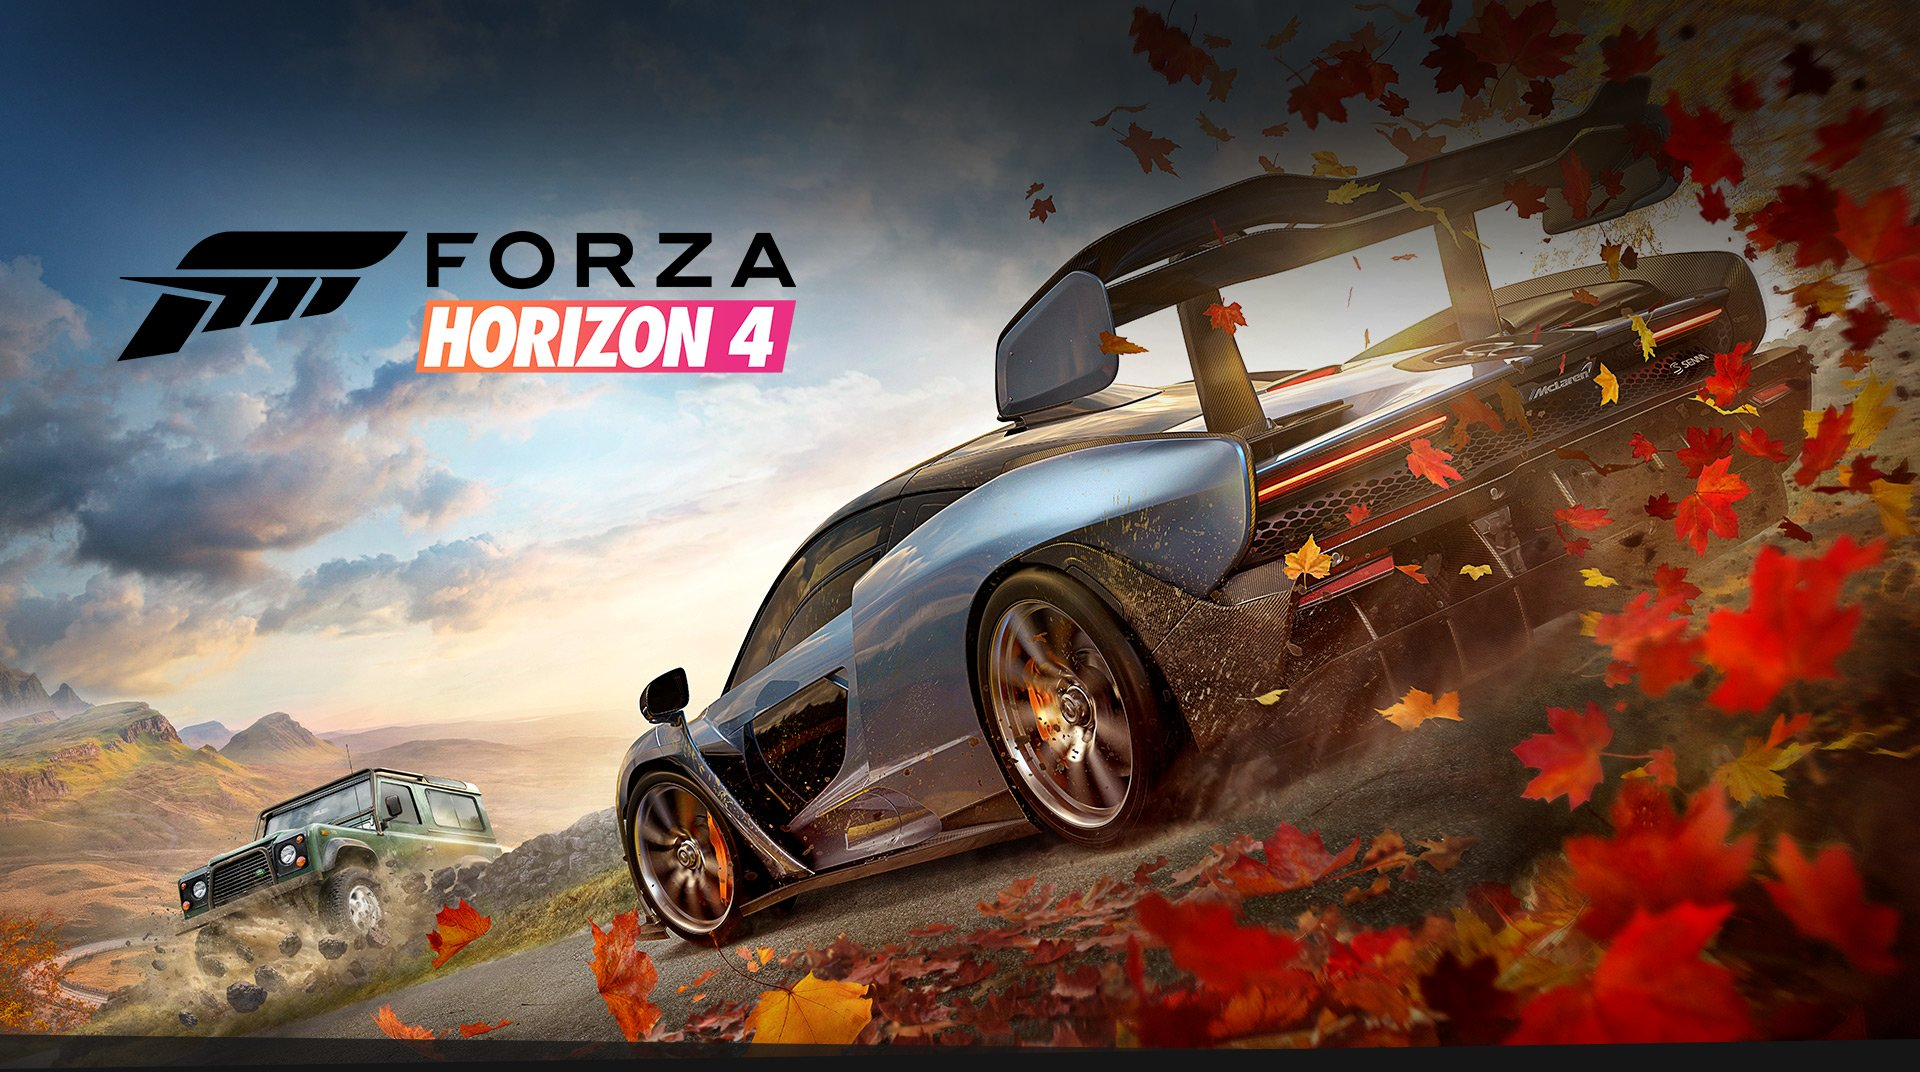 forza horizon 4 pc version full game free download frontline gaming. Black Bedroom Furniture Sets. Home Design Ideas